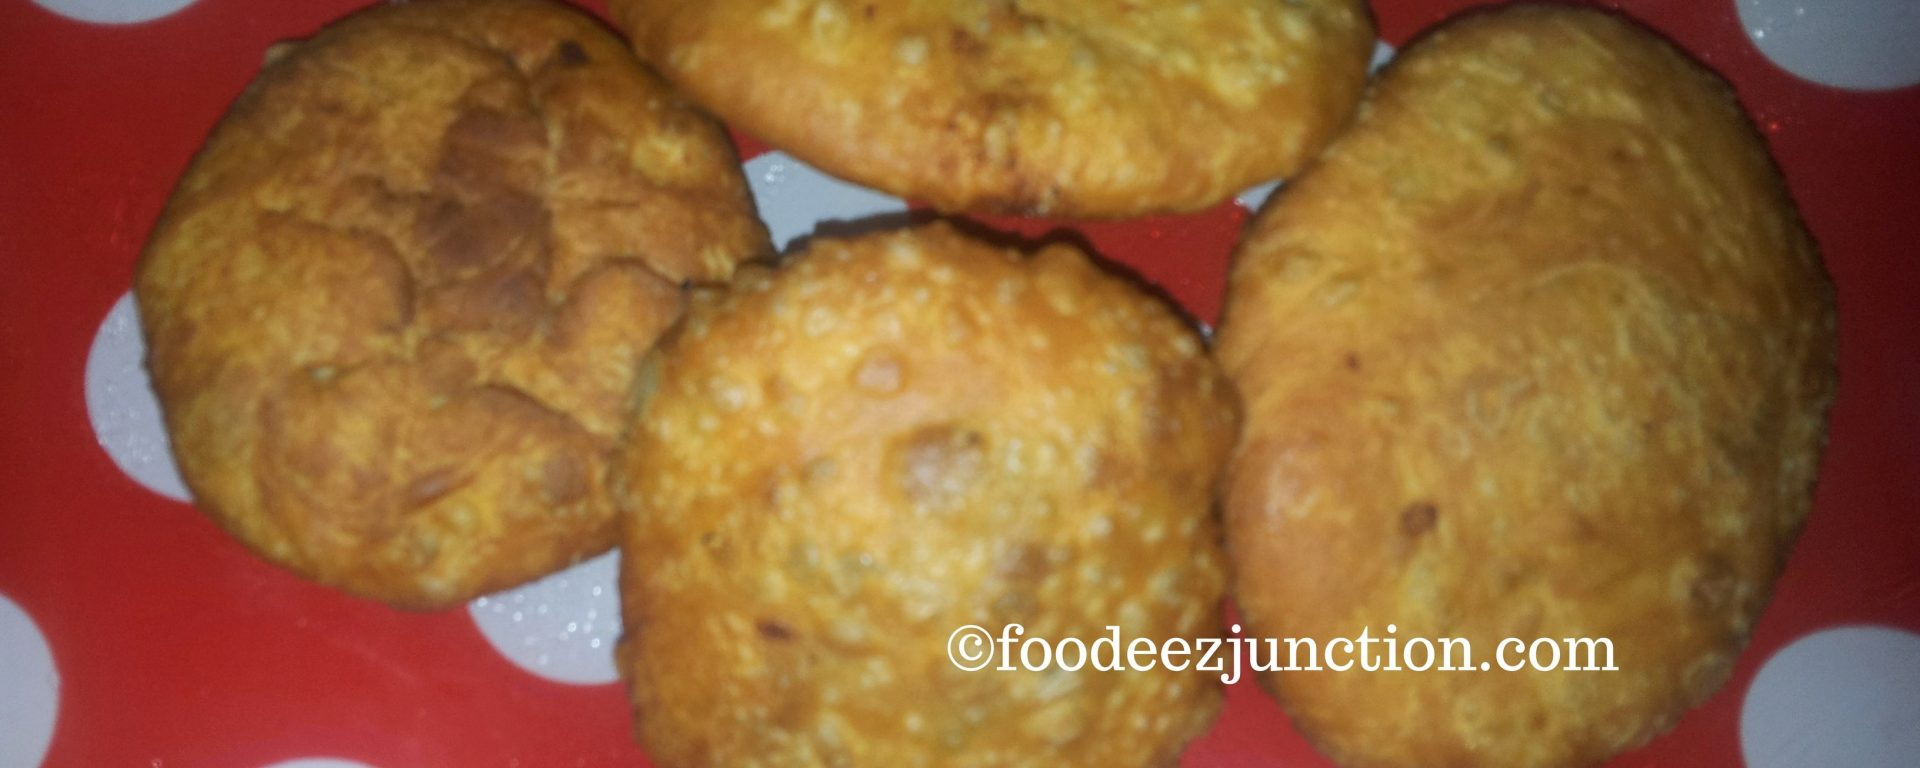 Aloo Kachori https://foodeezjunction.com/2016/08/25/aloo-ki-kachori-recipe/